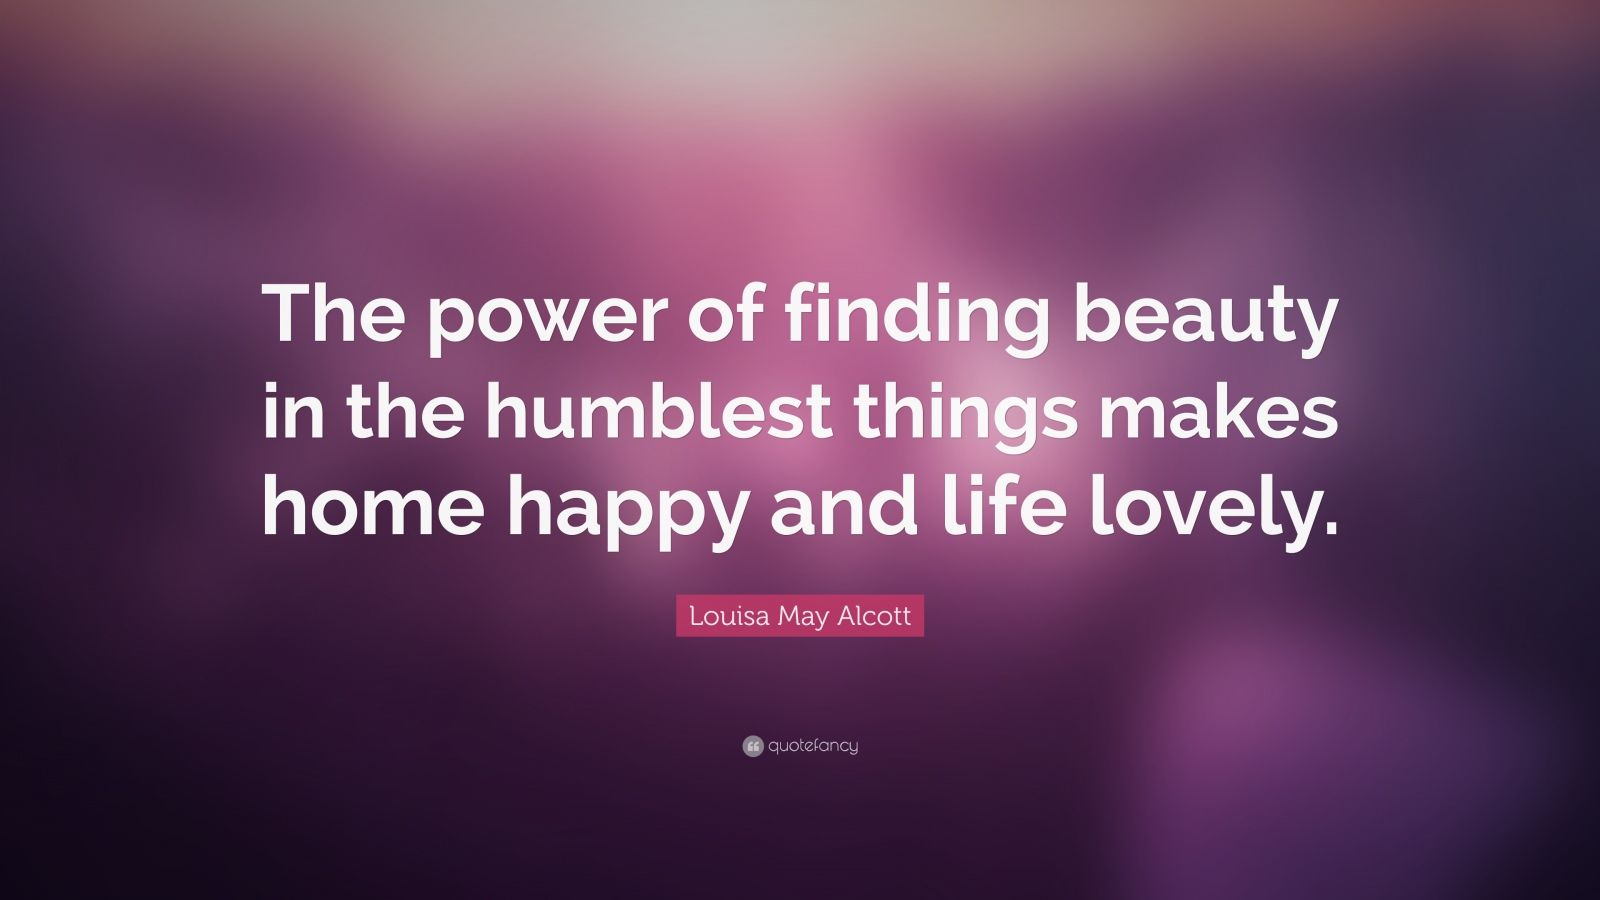 """Louisa May Alcott Quote: """"The power of finding beauty in the humblest things makes home happy and life lovely."""""""